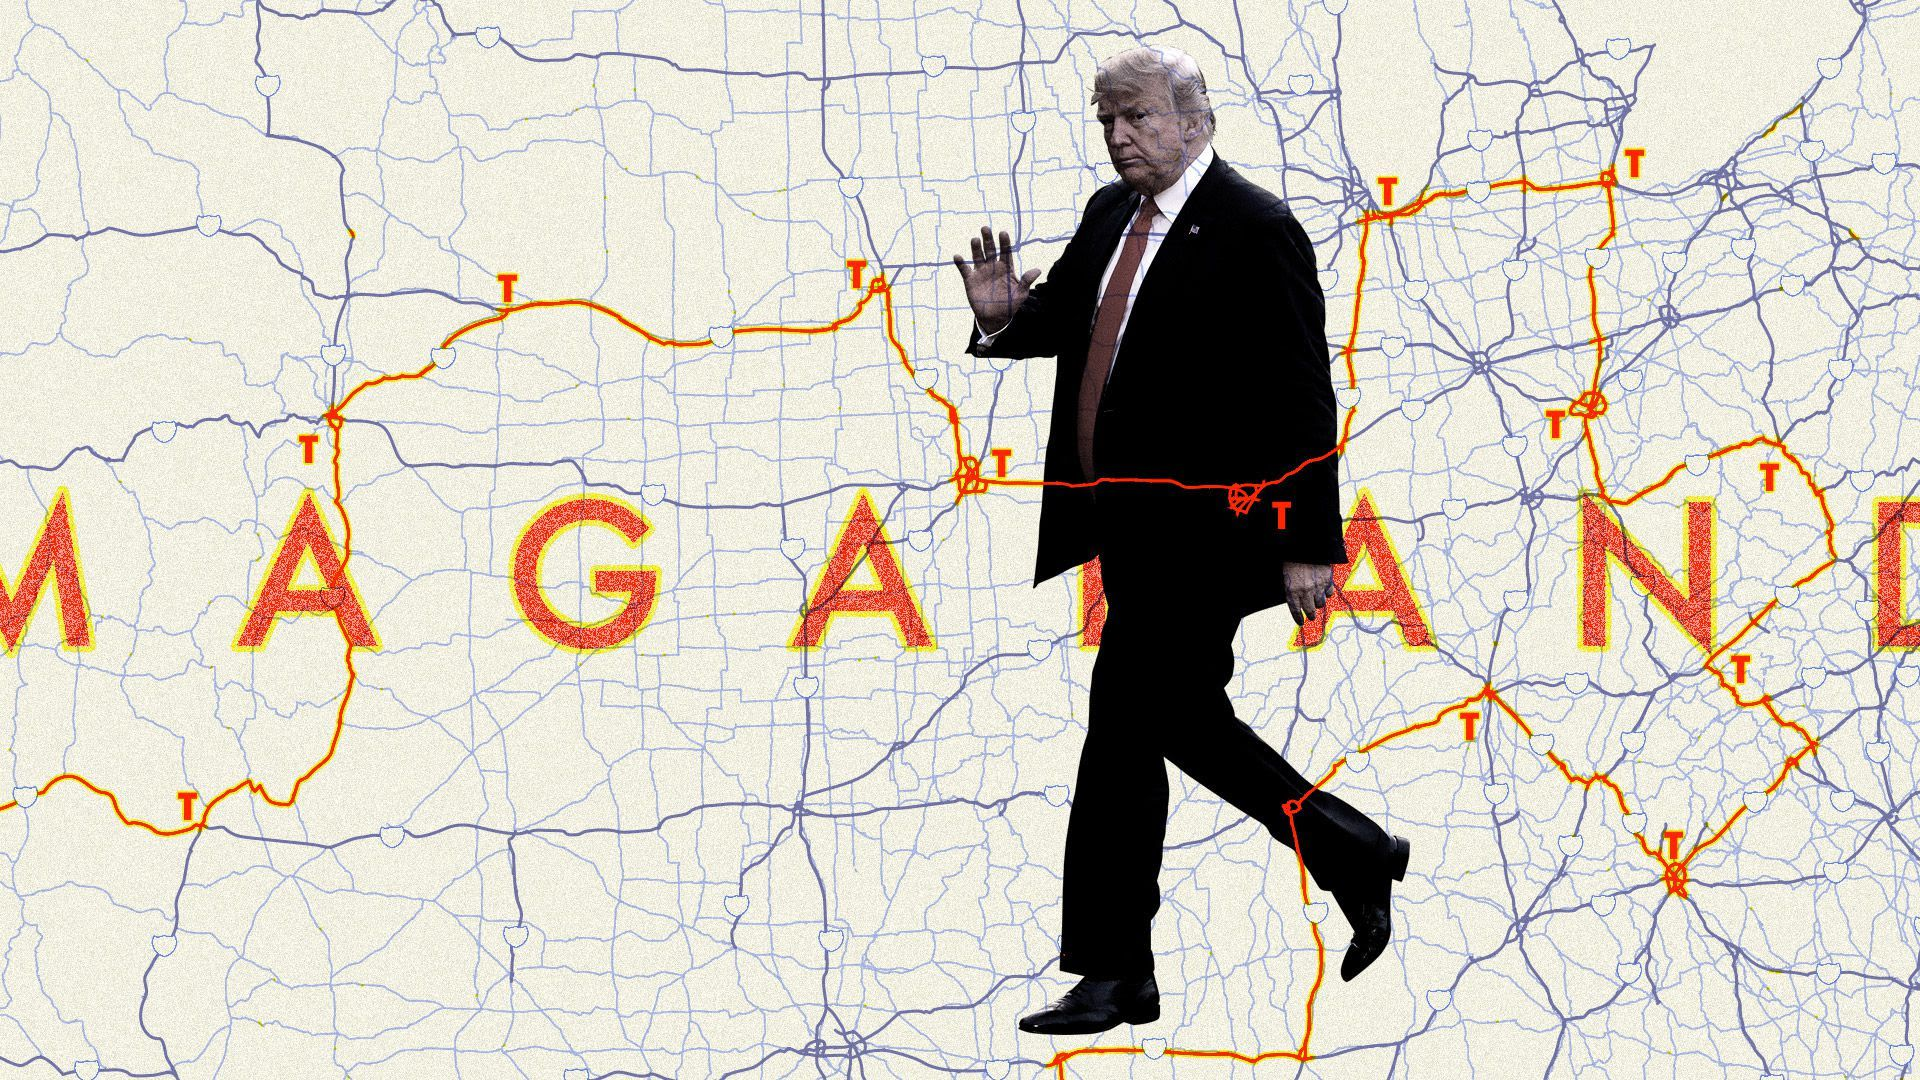 Illustration of Trump walking on a map.